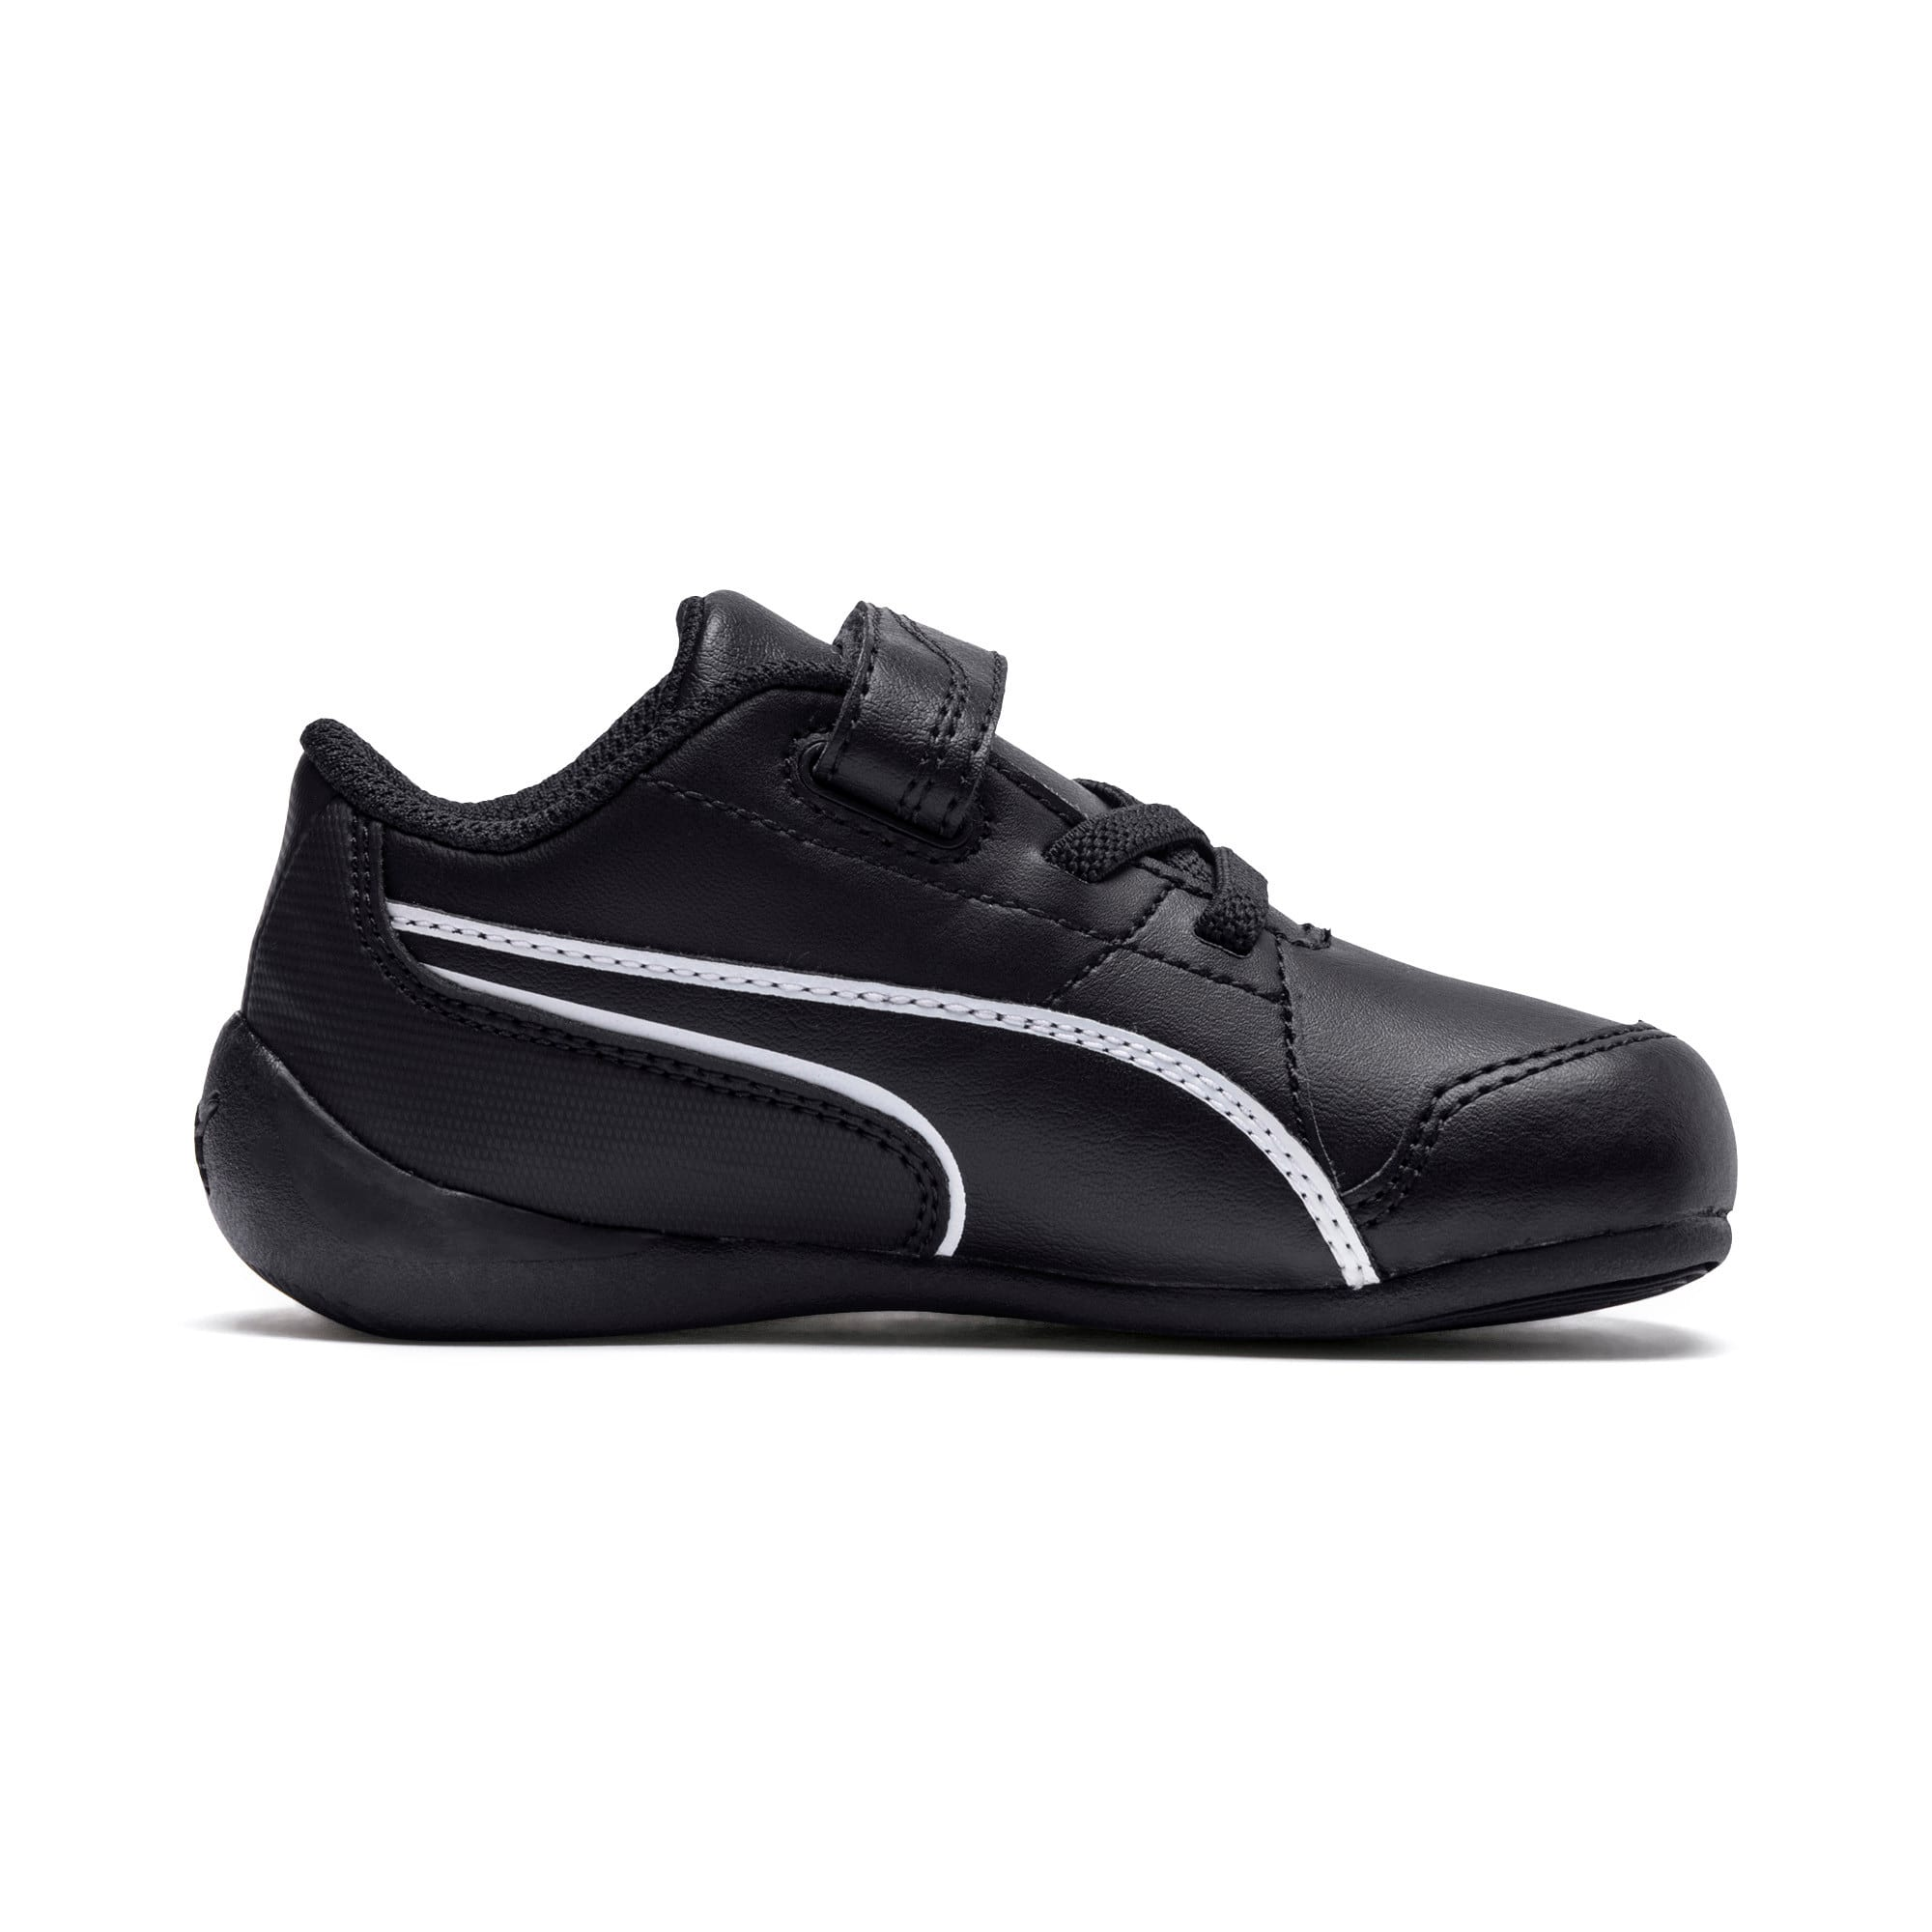 Thumbnail 6 of BMW Motorsport Drift Cat 7 V Preschool Kids' Trainers, Anthracite-Anthracite, medium-IND